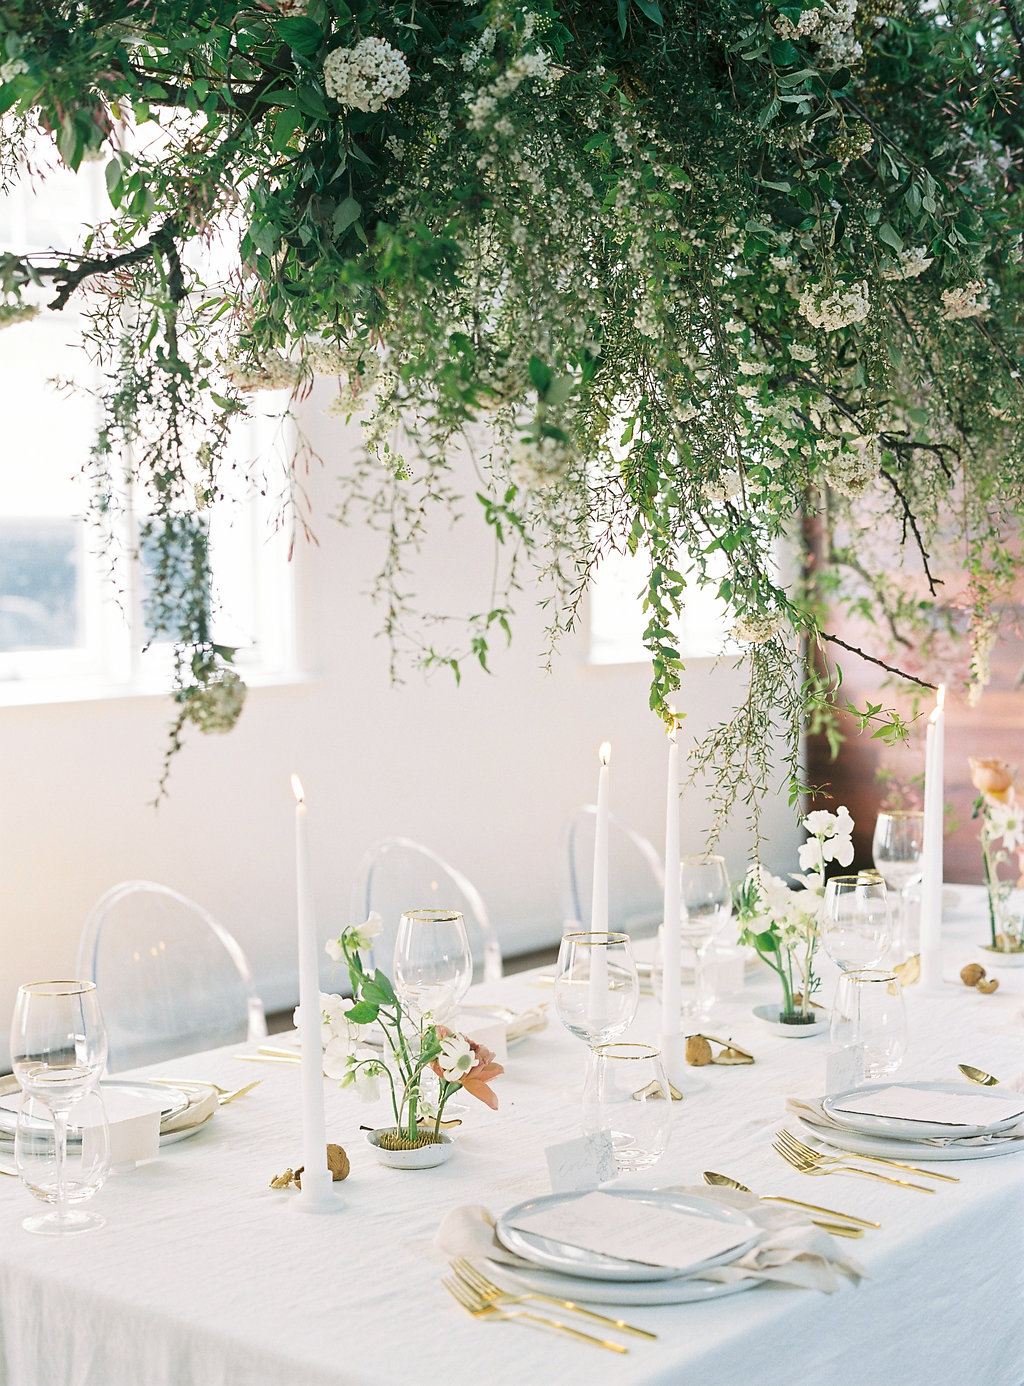 Aravella Event Design | Modern Minimalist Bridal Inspiration | Photo by Katie Grant Photography | Wedding | Tablescape